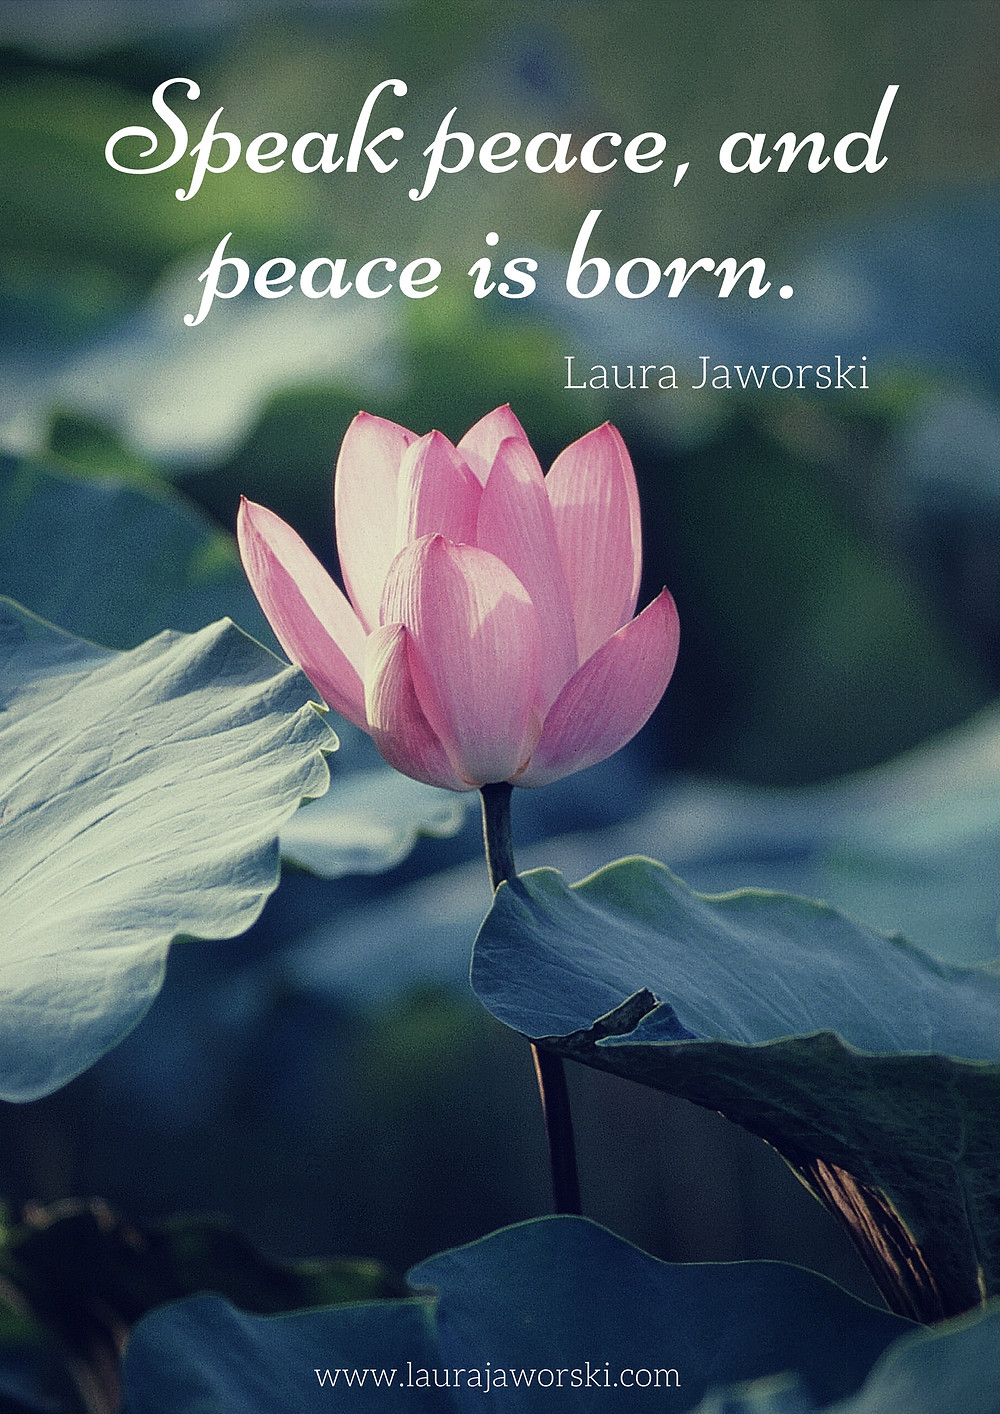 """Speak peace, and peace is born."" ~ Laura Jaworski"